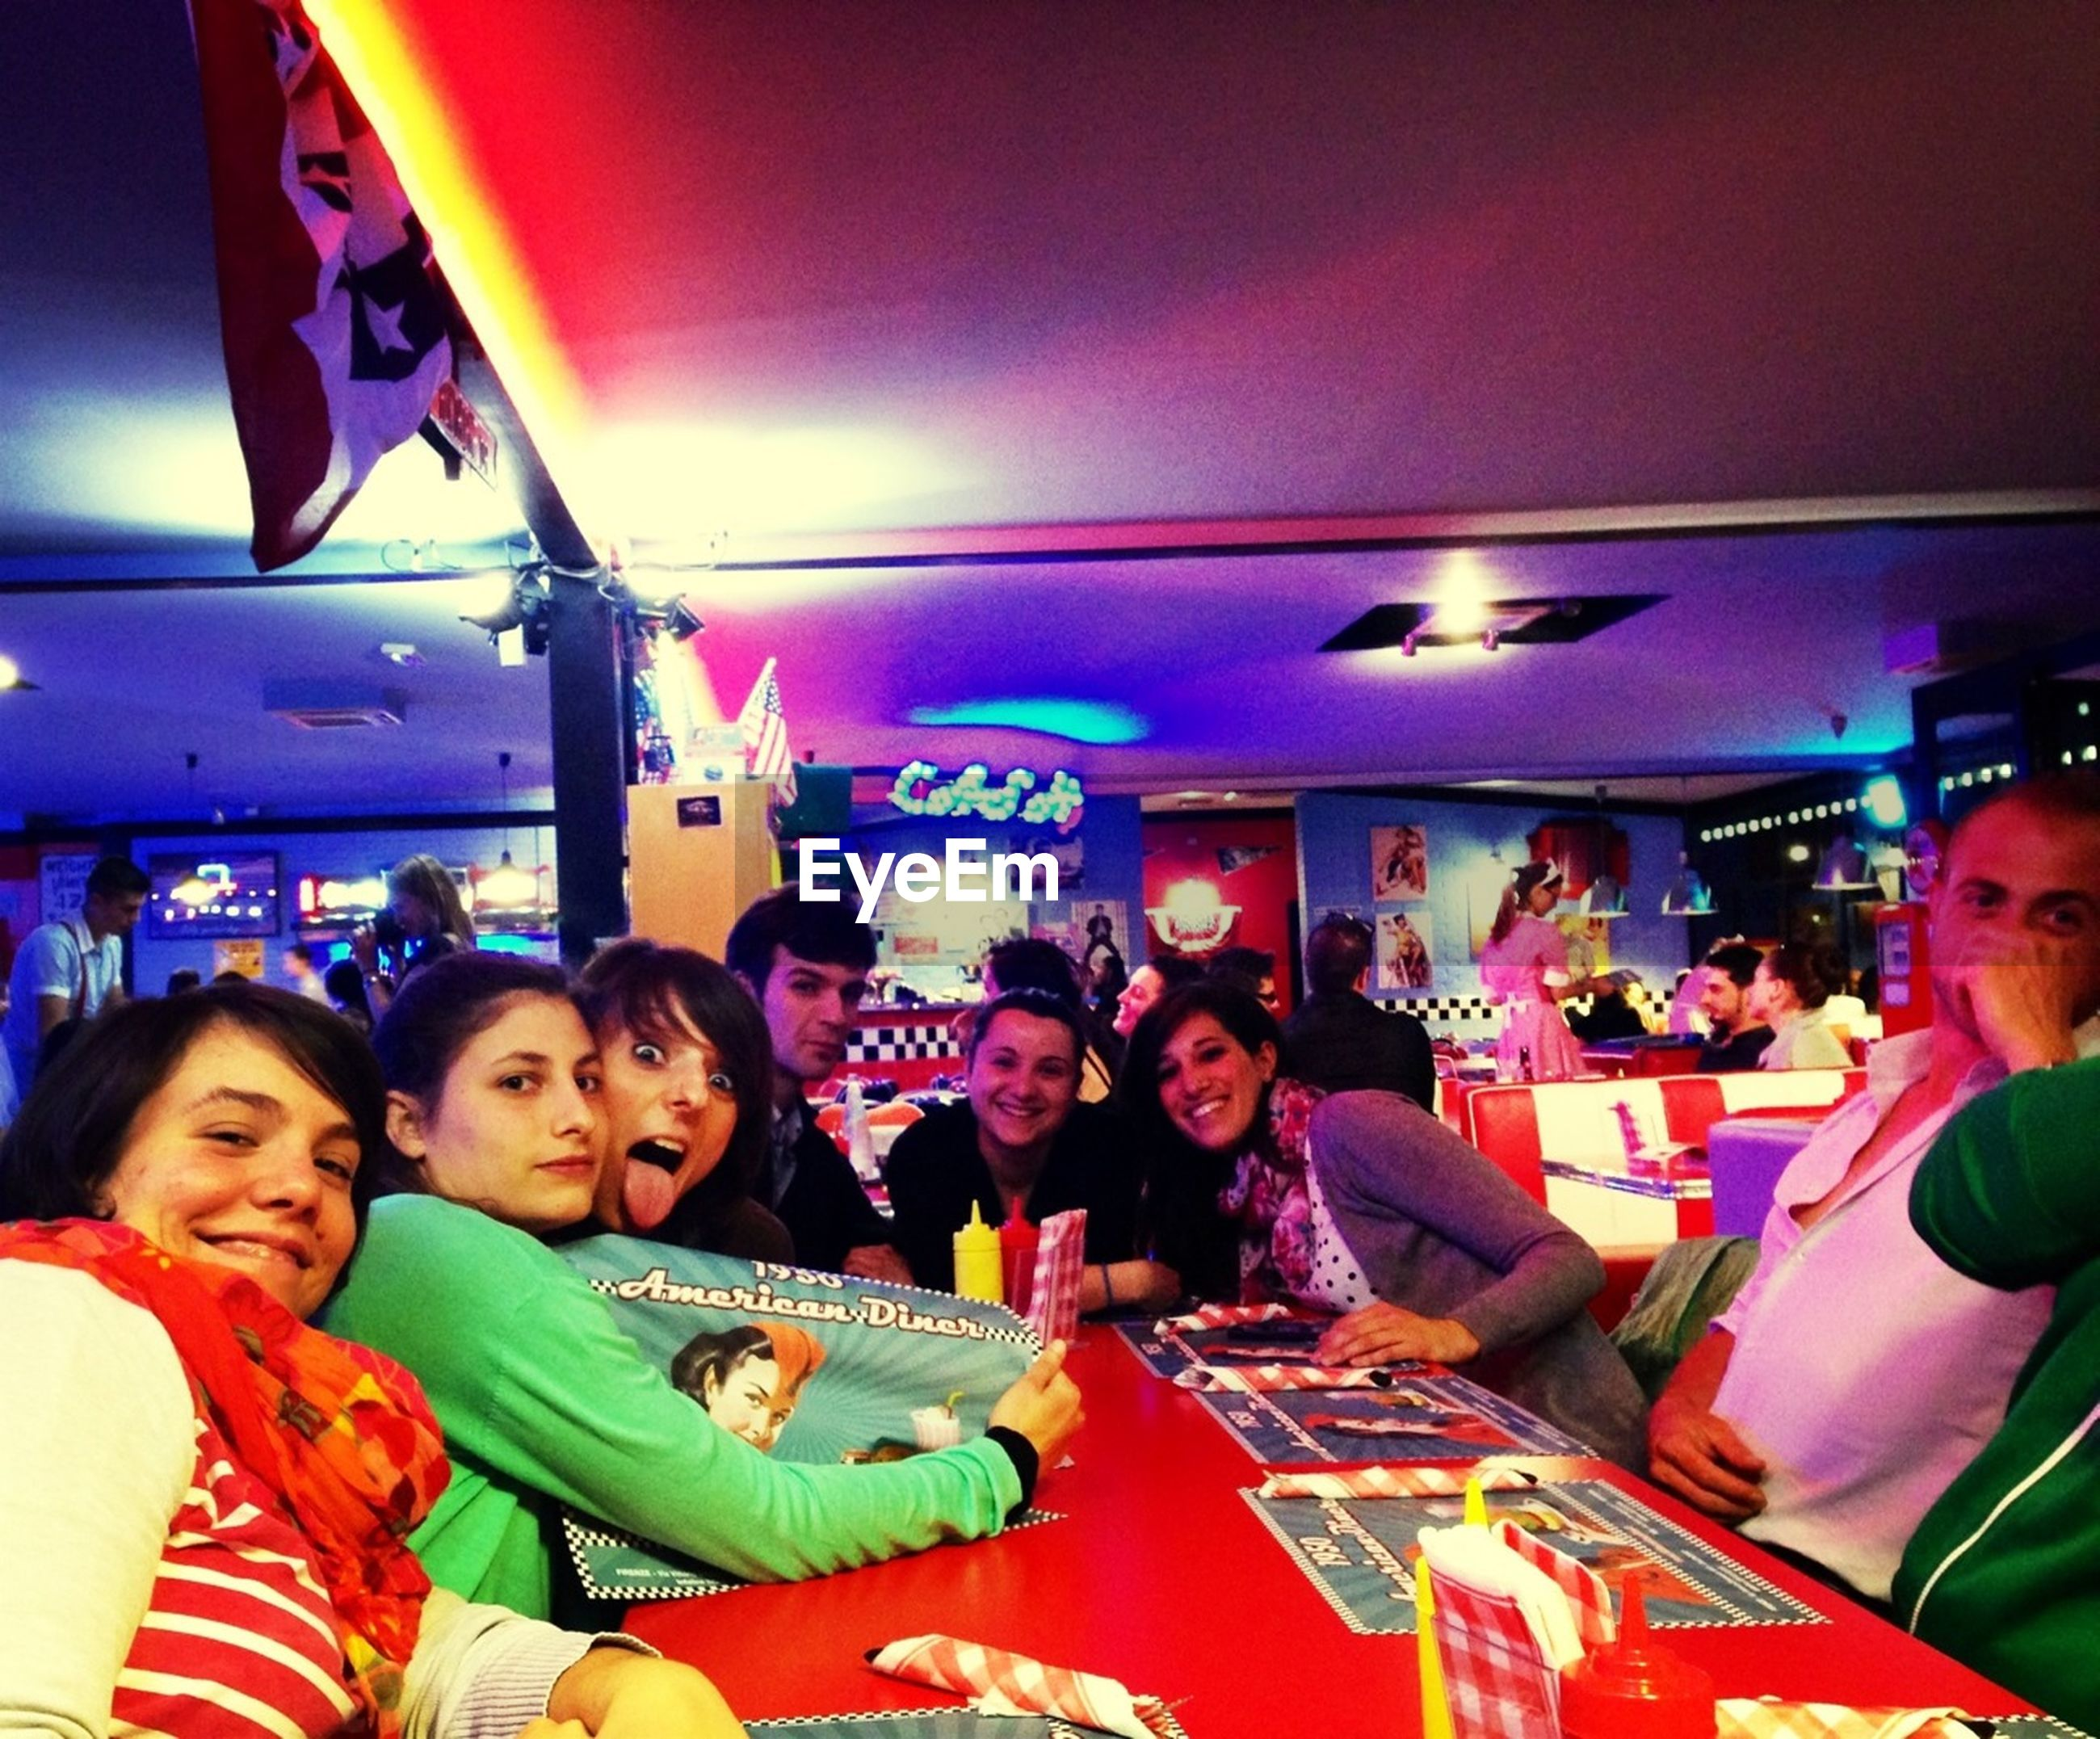 indoors, lifestyles, illuminated, leisure activity, large group of people, enjoyment, togetherness, fun, celebration, sitting, men, person, night, happiness, arts culture and entertainment, lighting equipment, casual clothing, retail